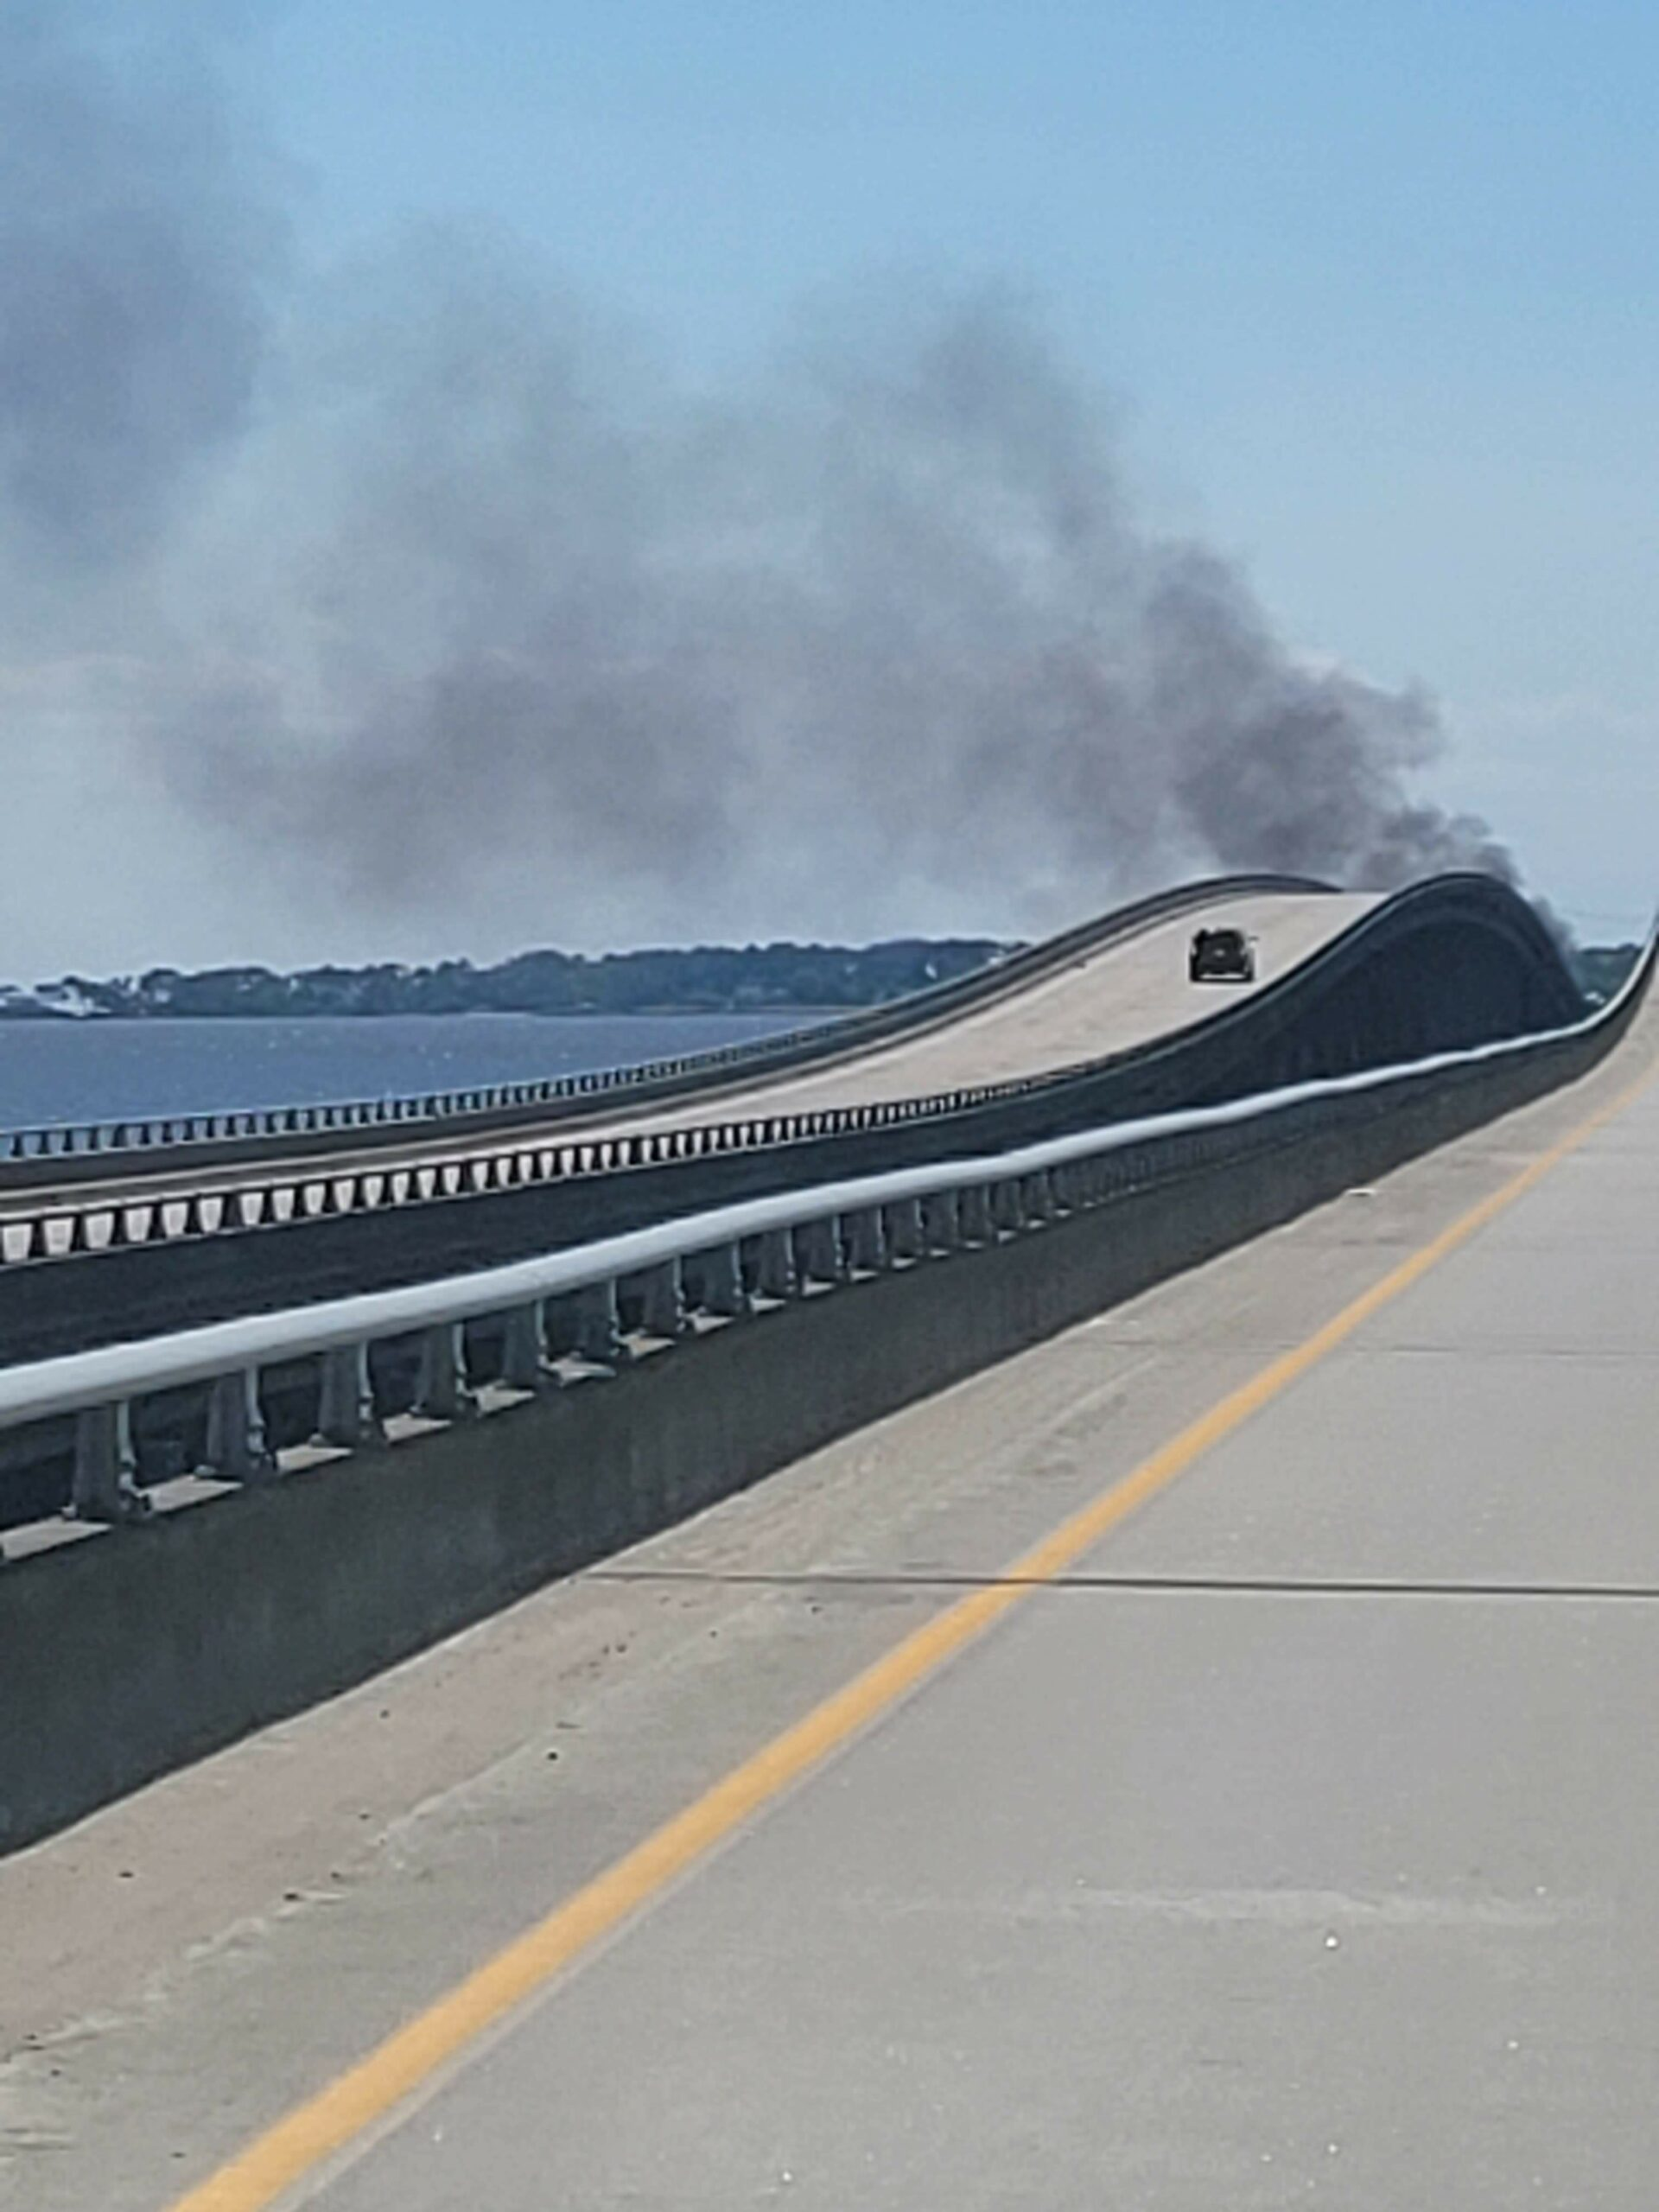 UPDATED: Crash shuts down eastbound Wright Memorial Bridge, traffic alternating in both directions on westbound span - OBXToday.